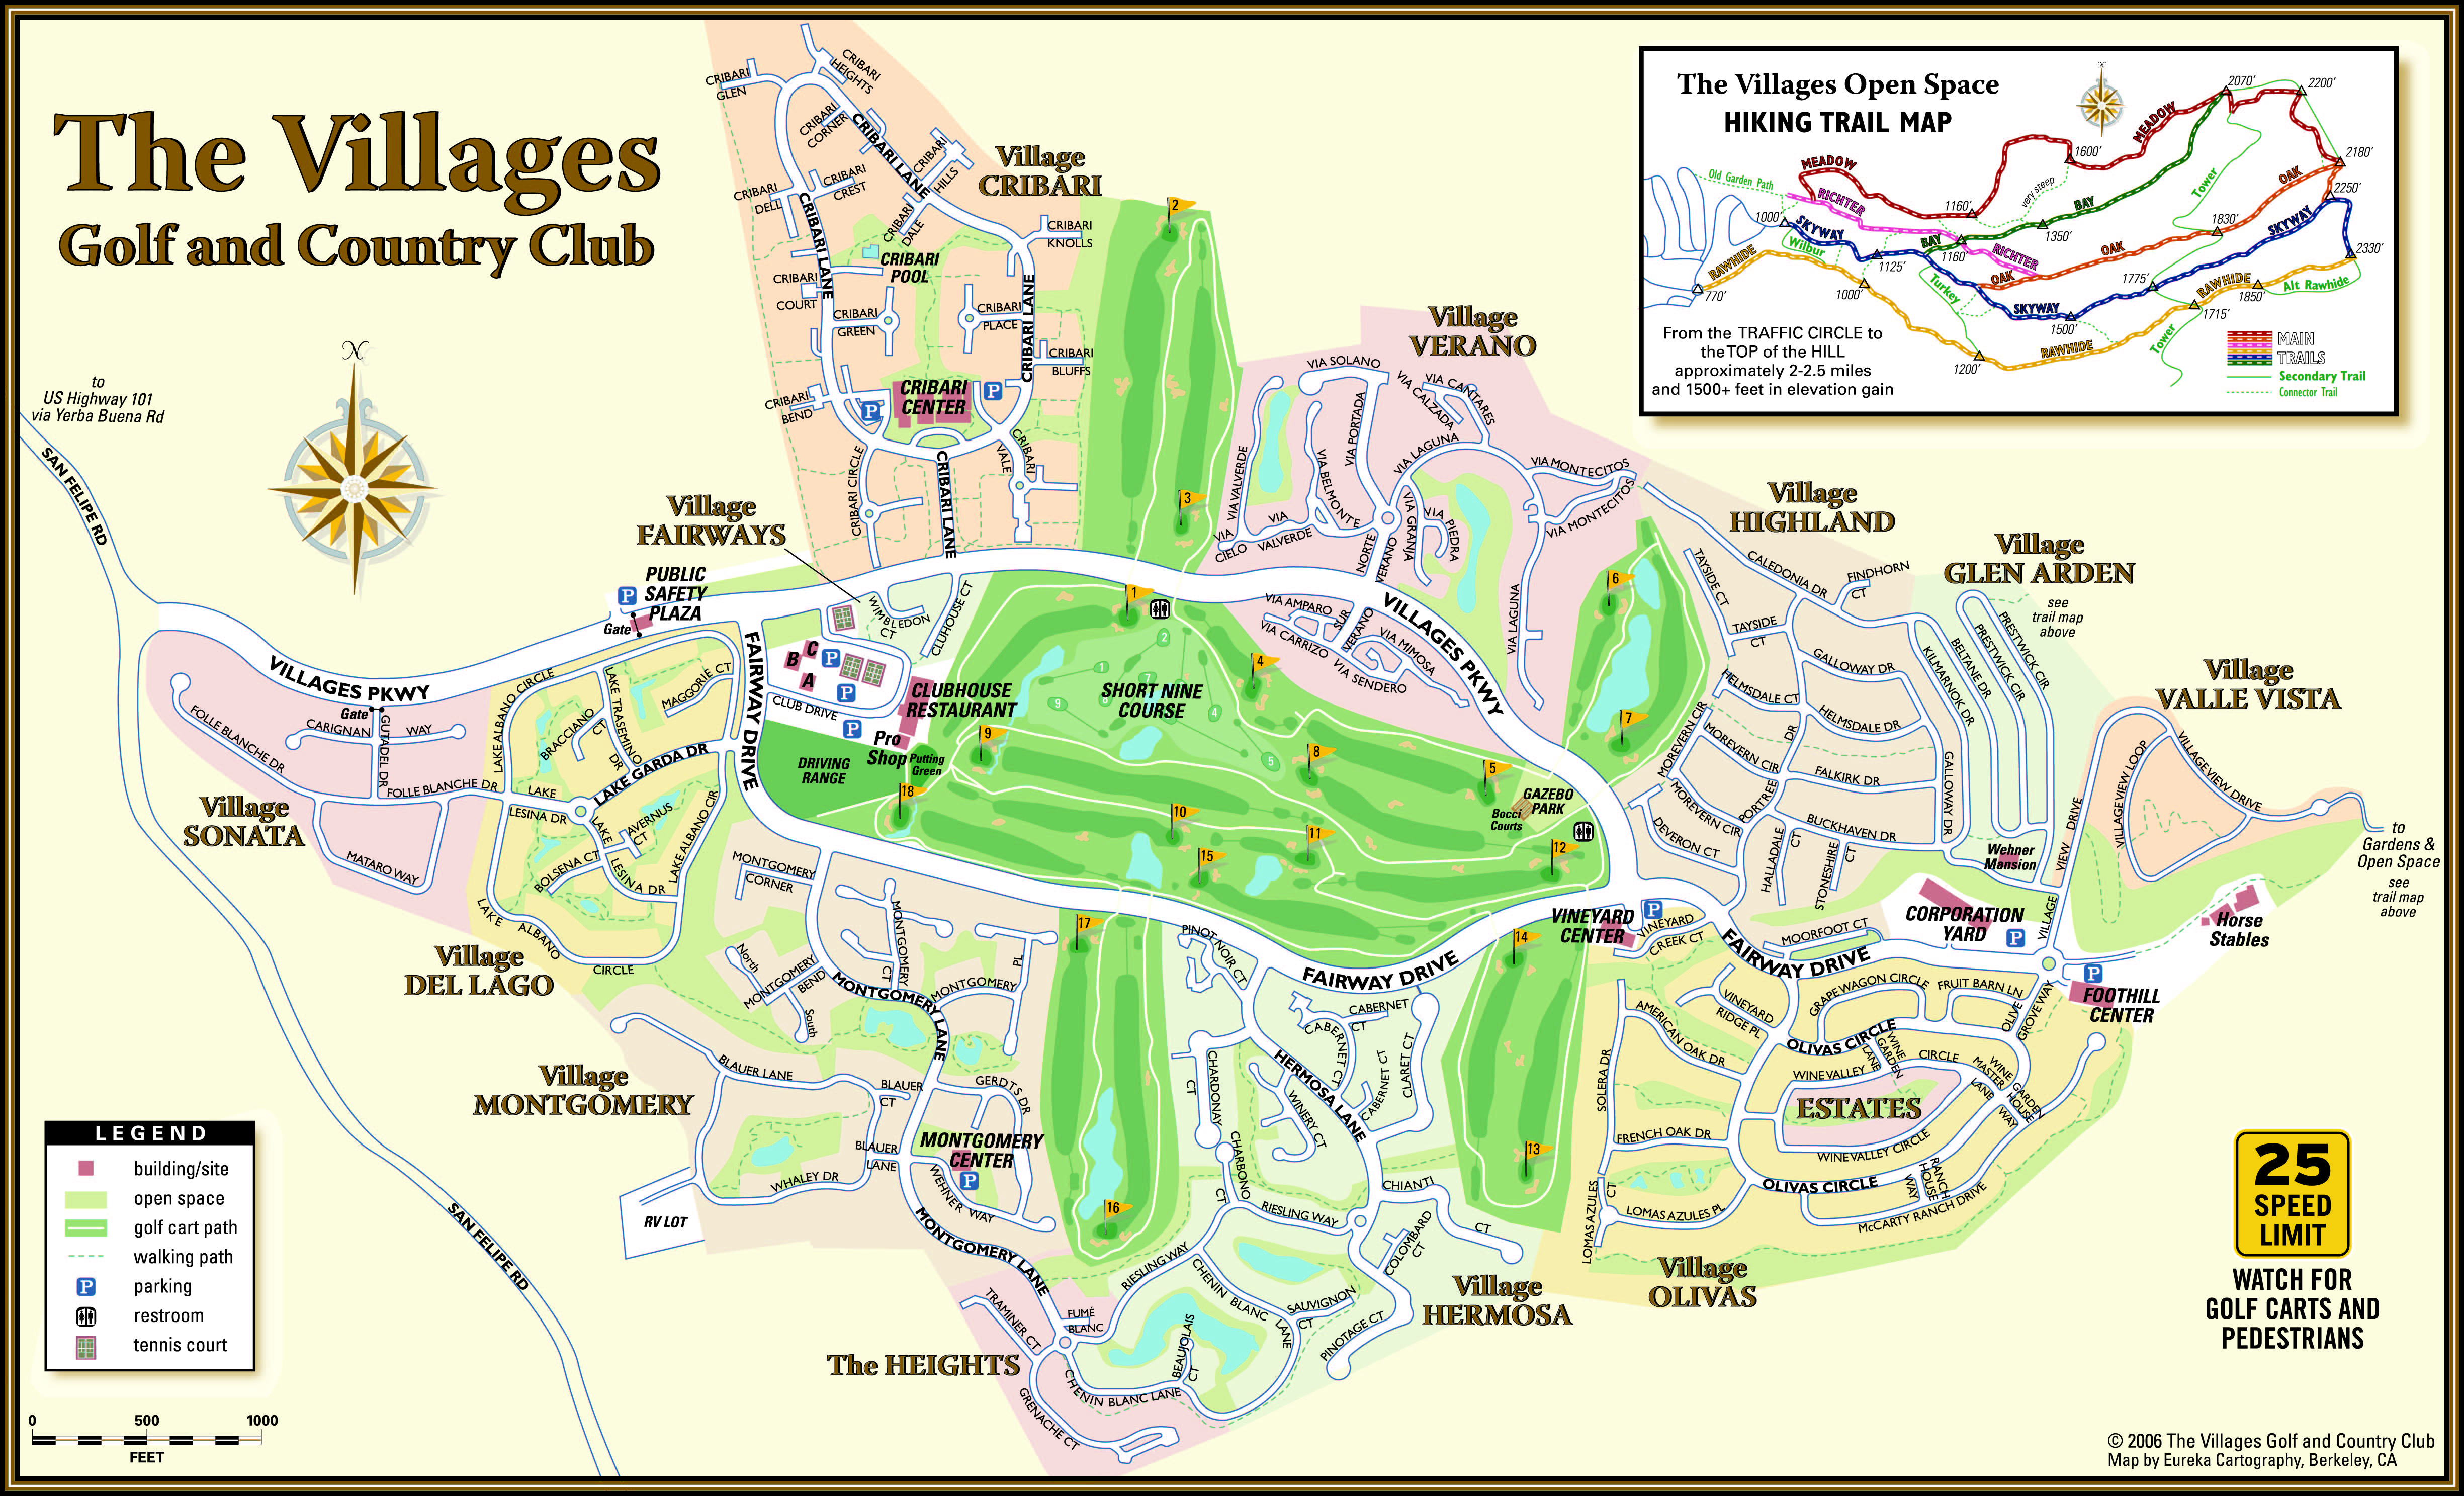 The Courses The Villages Golf And Country Club